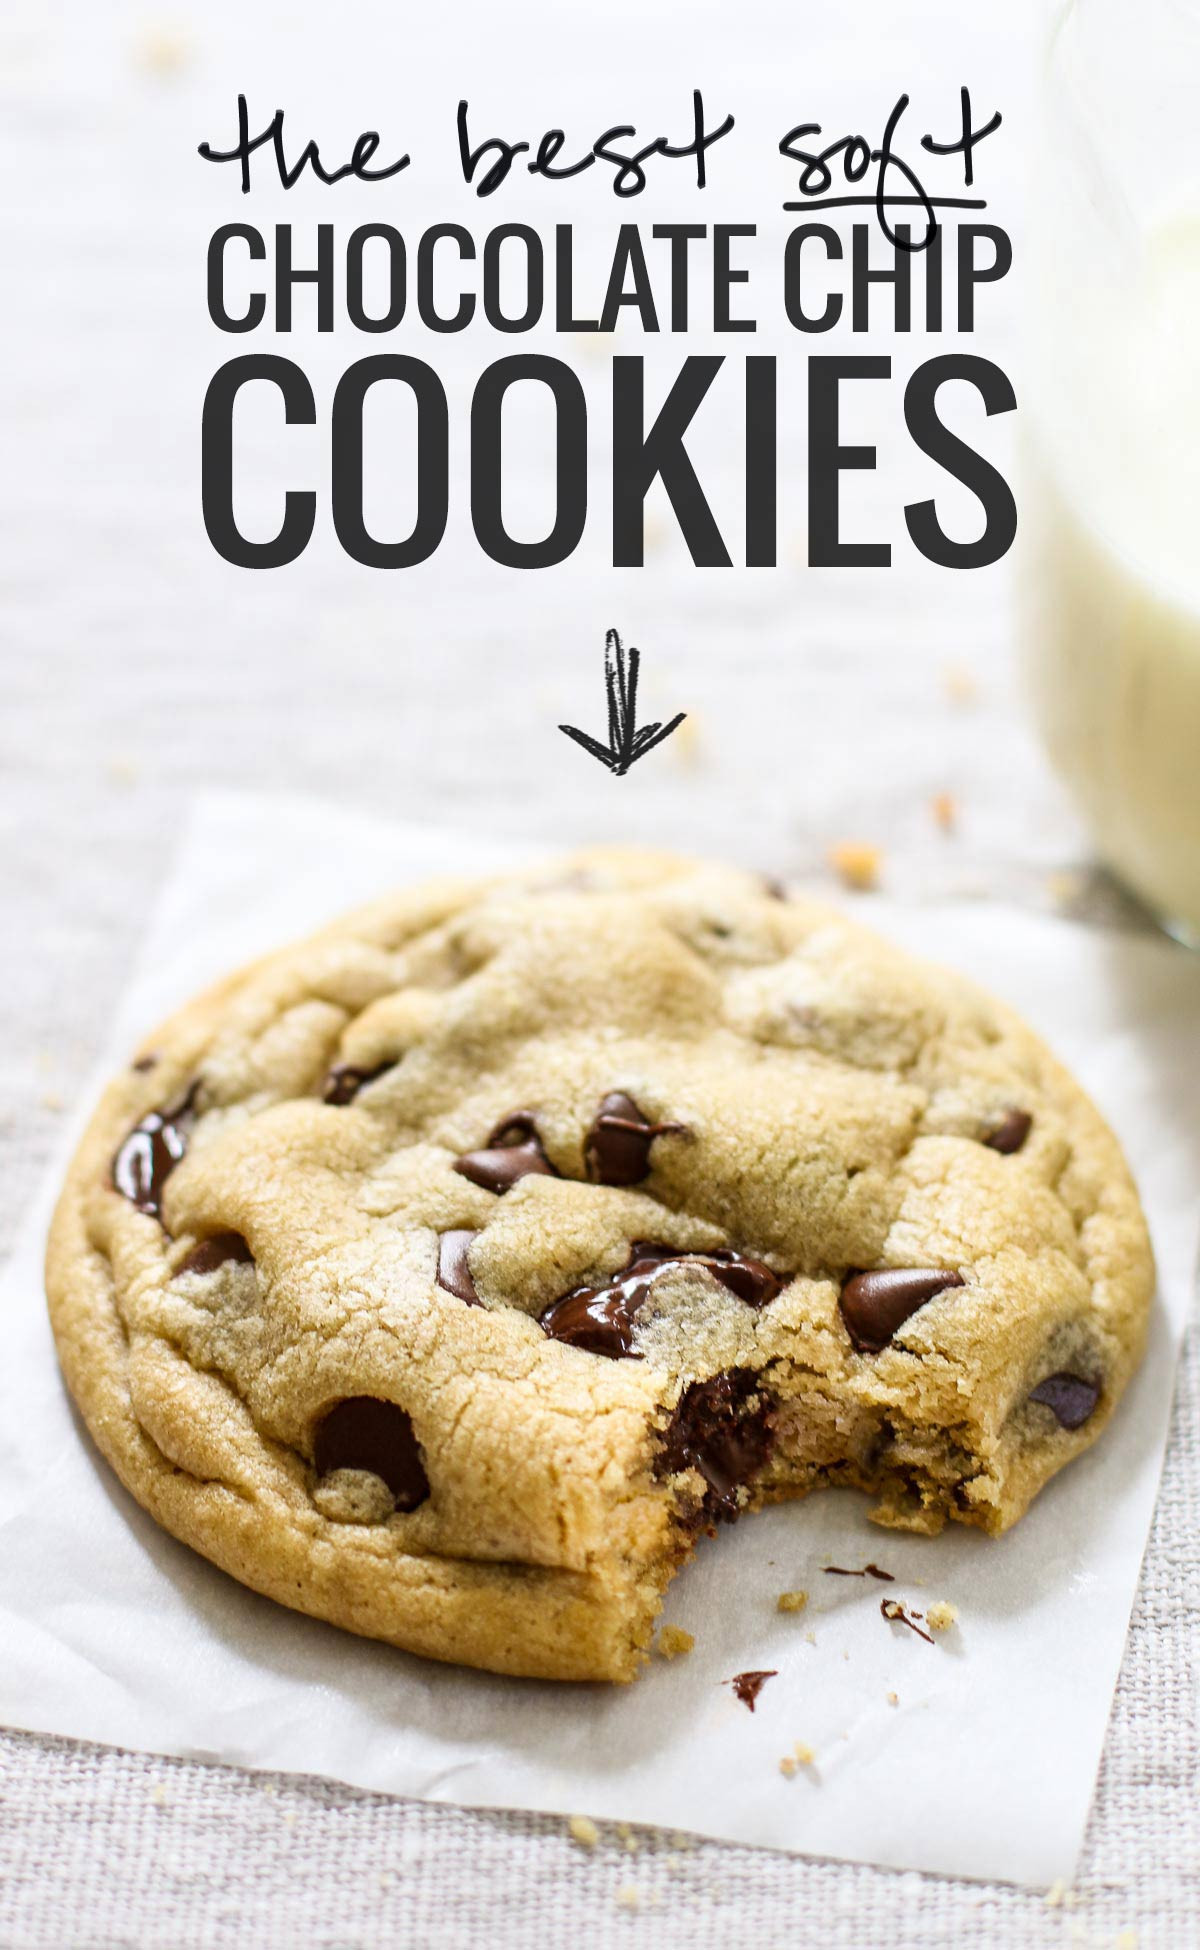 How To Bake Chocolate Chip Cookies  The Best Soft Chocolate Chip Cookies Recipe Pinch of Yum